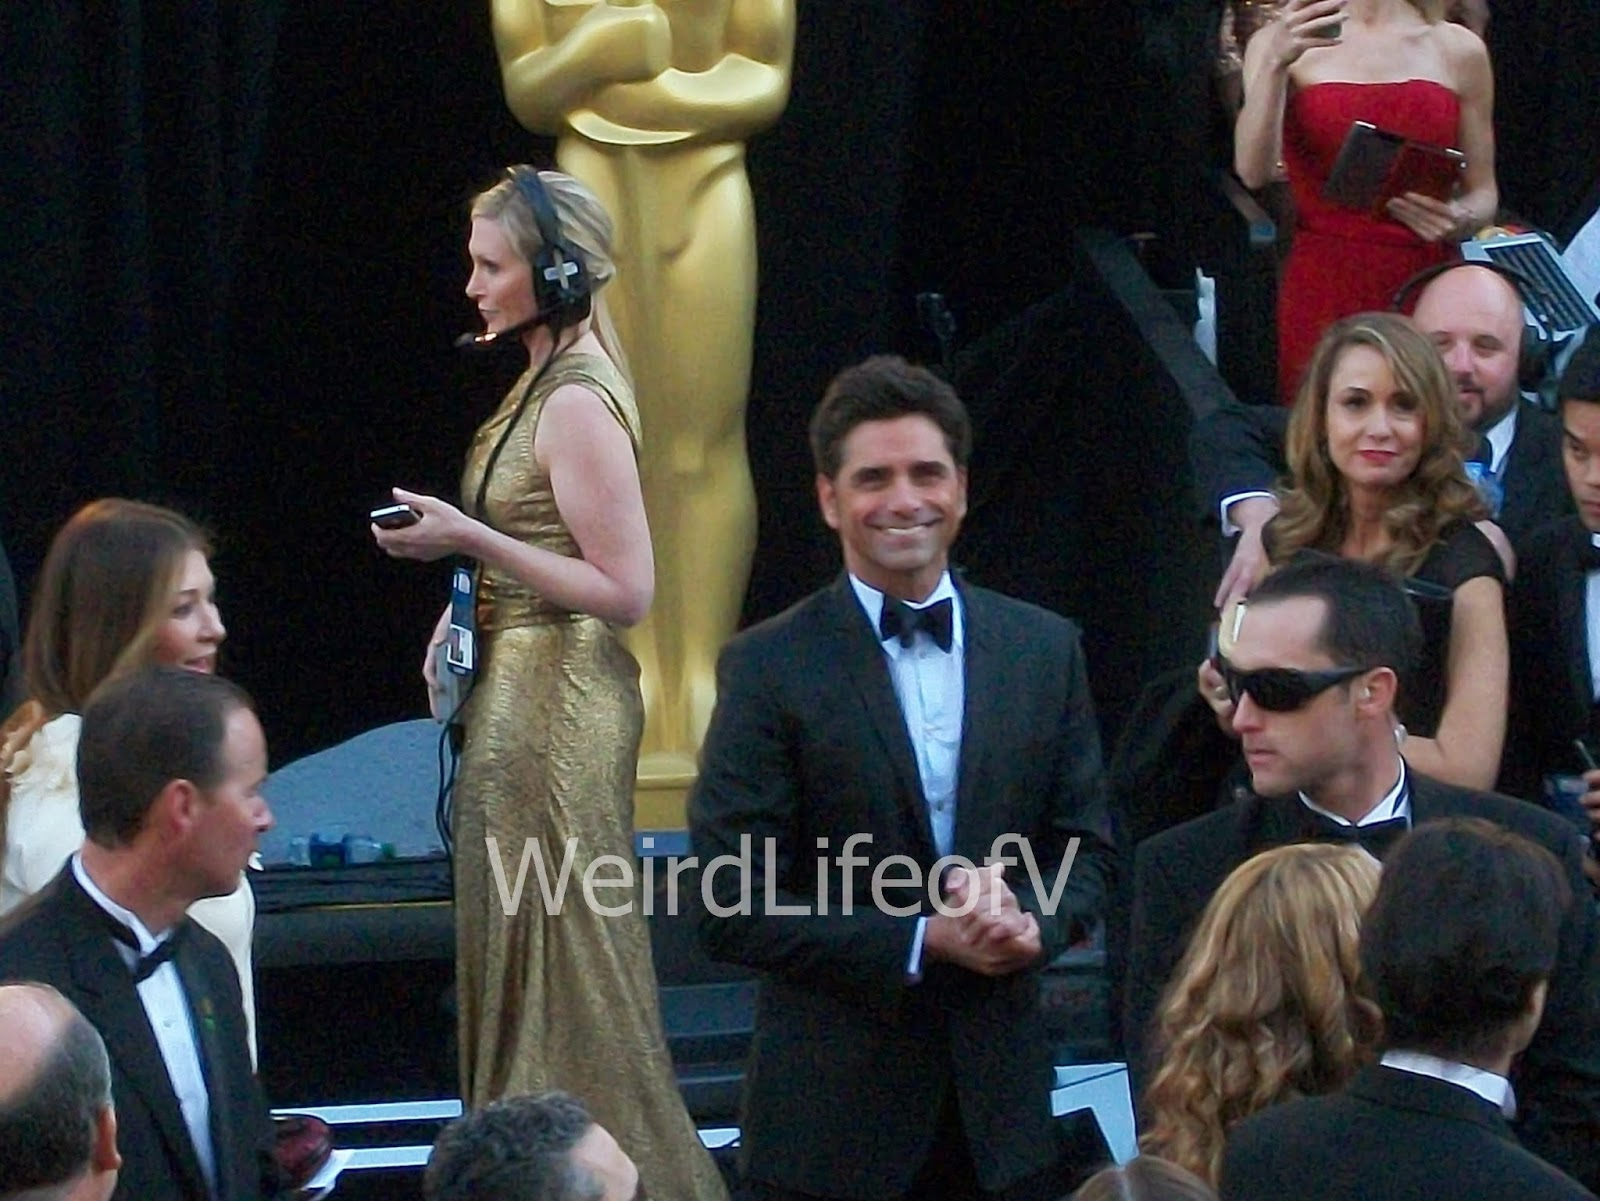 John Stamos smiling at the fans